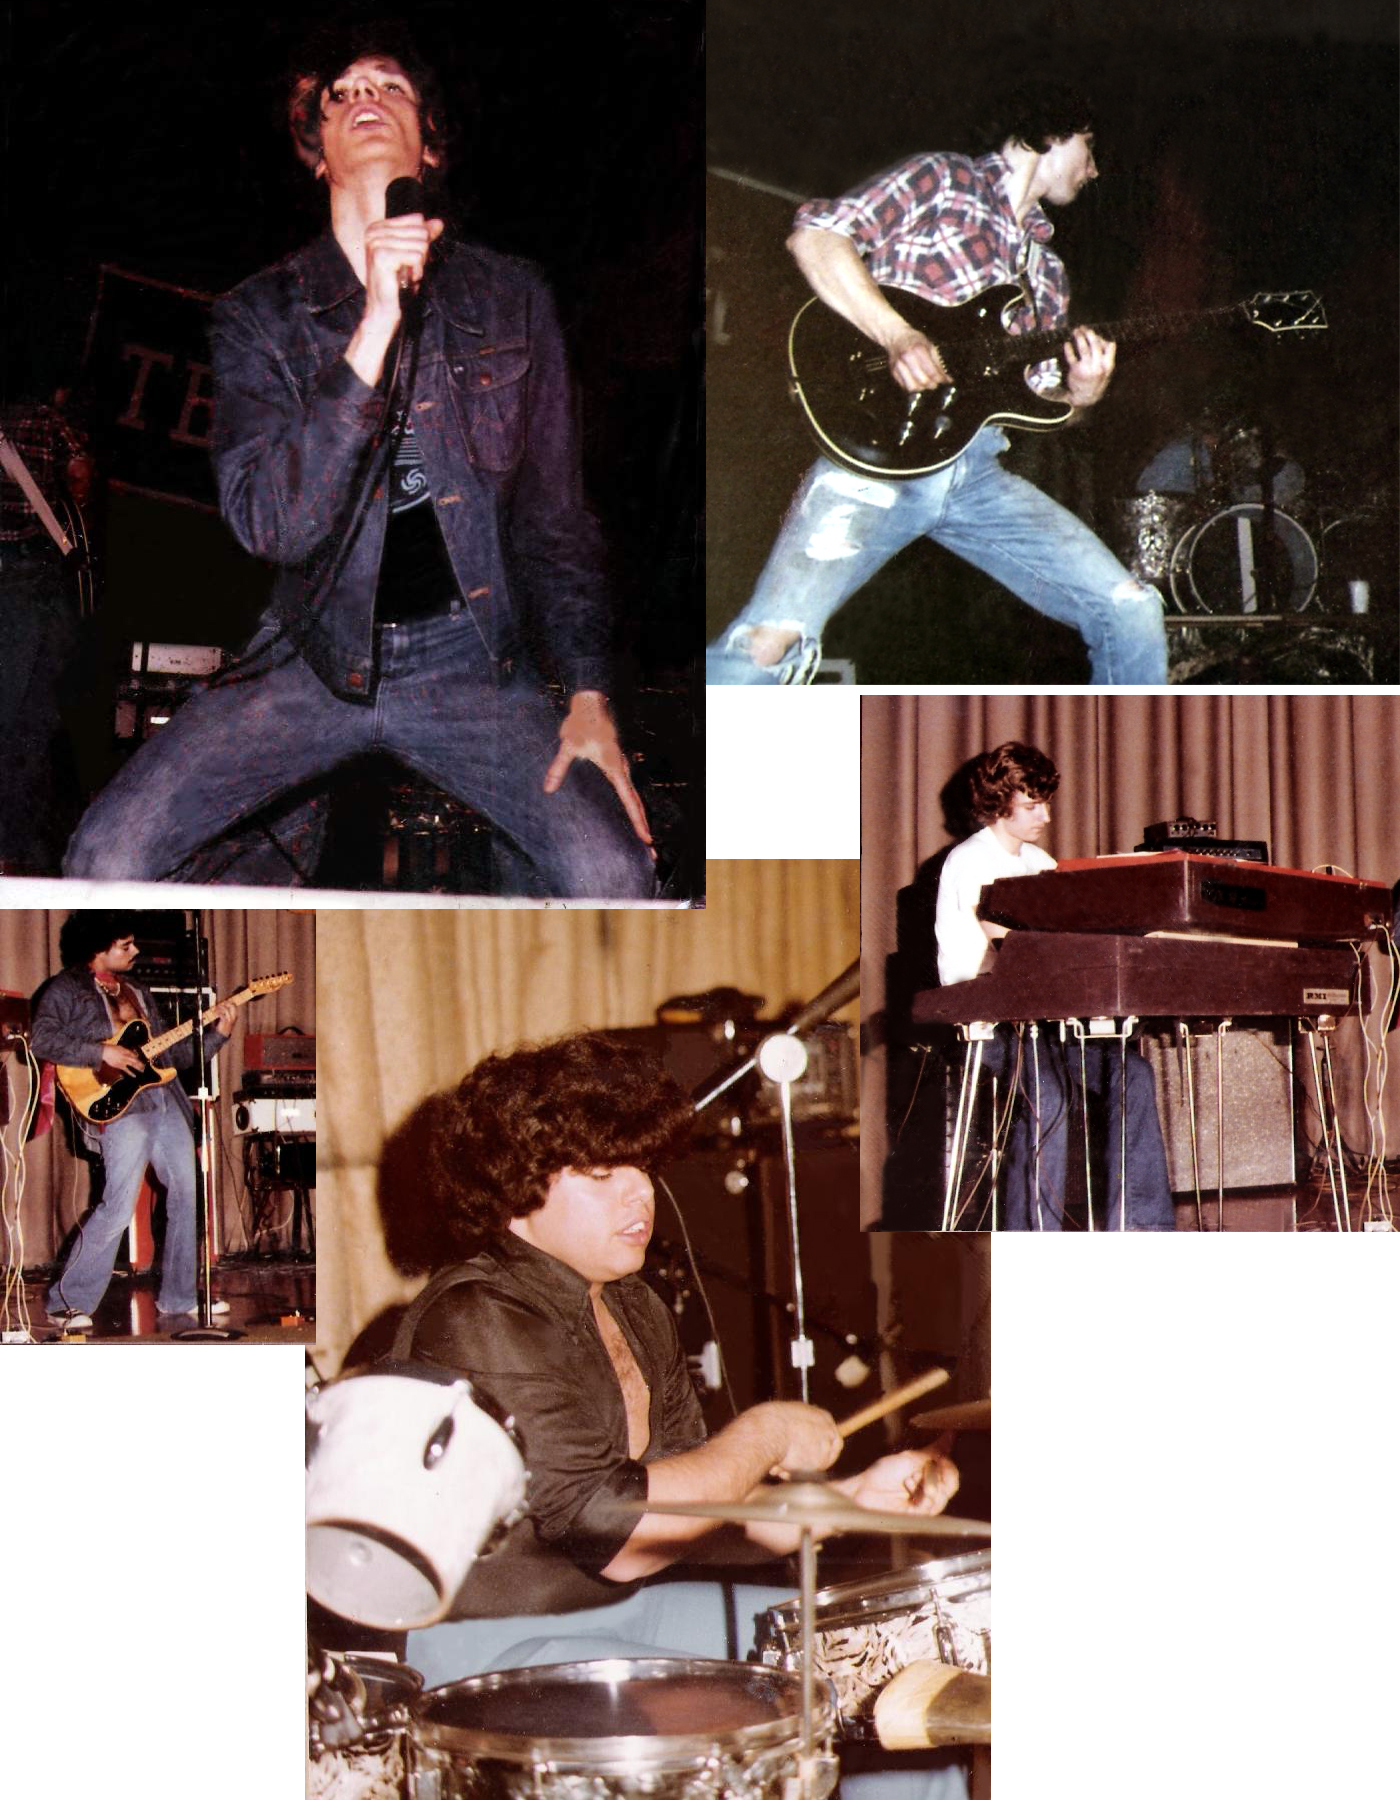 Parousia July 1977: Patrick Connolly. John McGovern, Barry Cannizzaro, Gerry Cannizzaro, Steve Soos